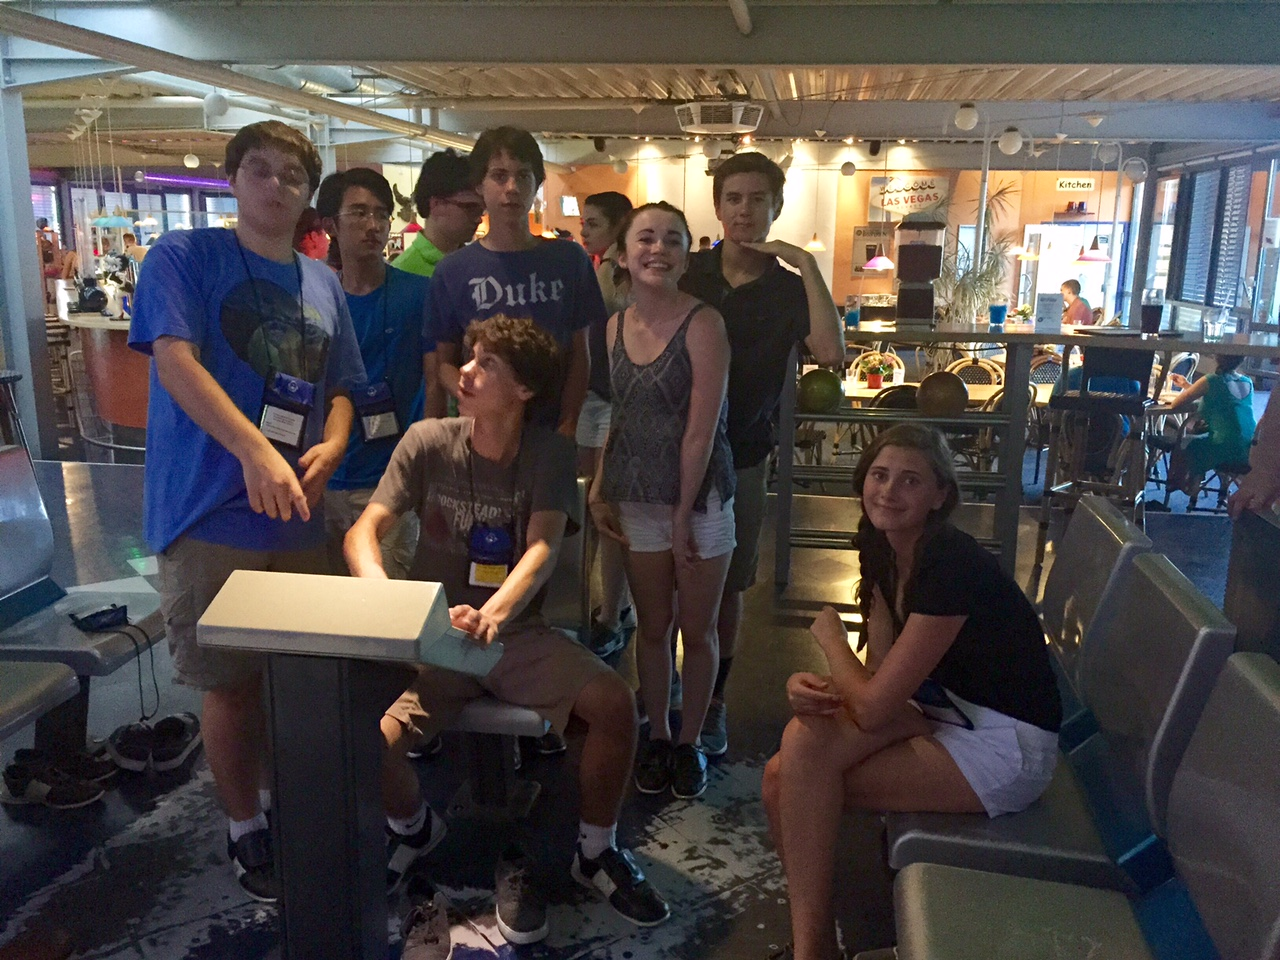 Celebrating American independence with some Fourth of July bowling in Rosenheim, Germany.